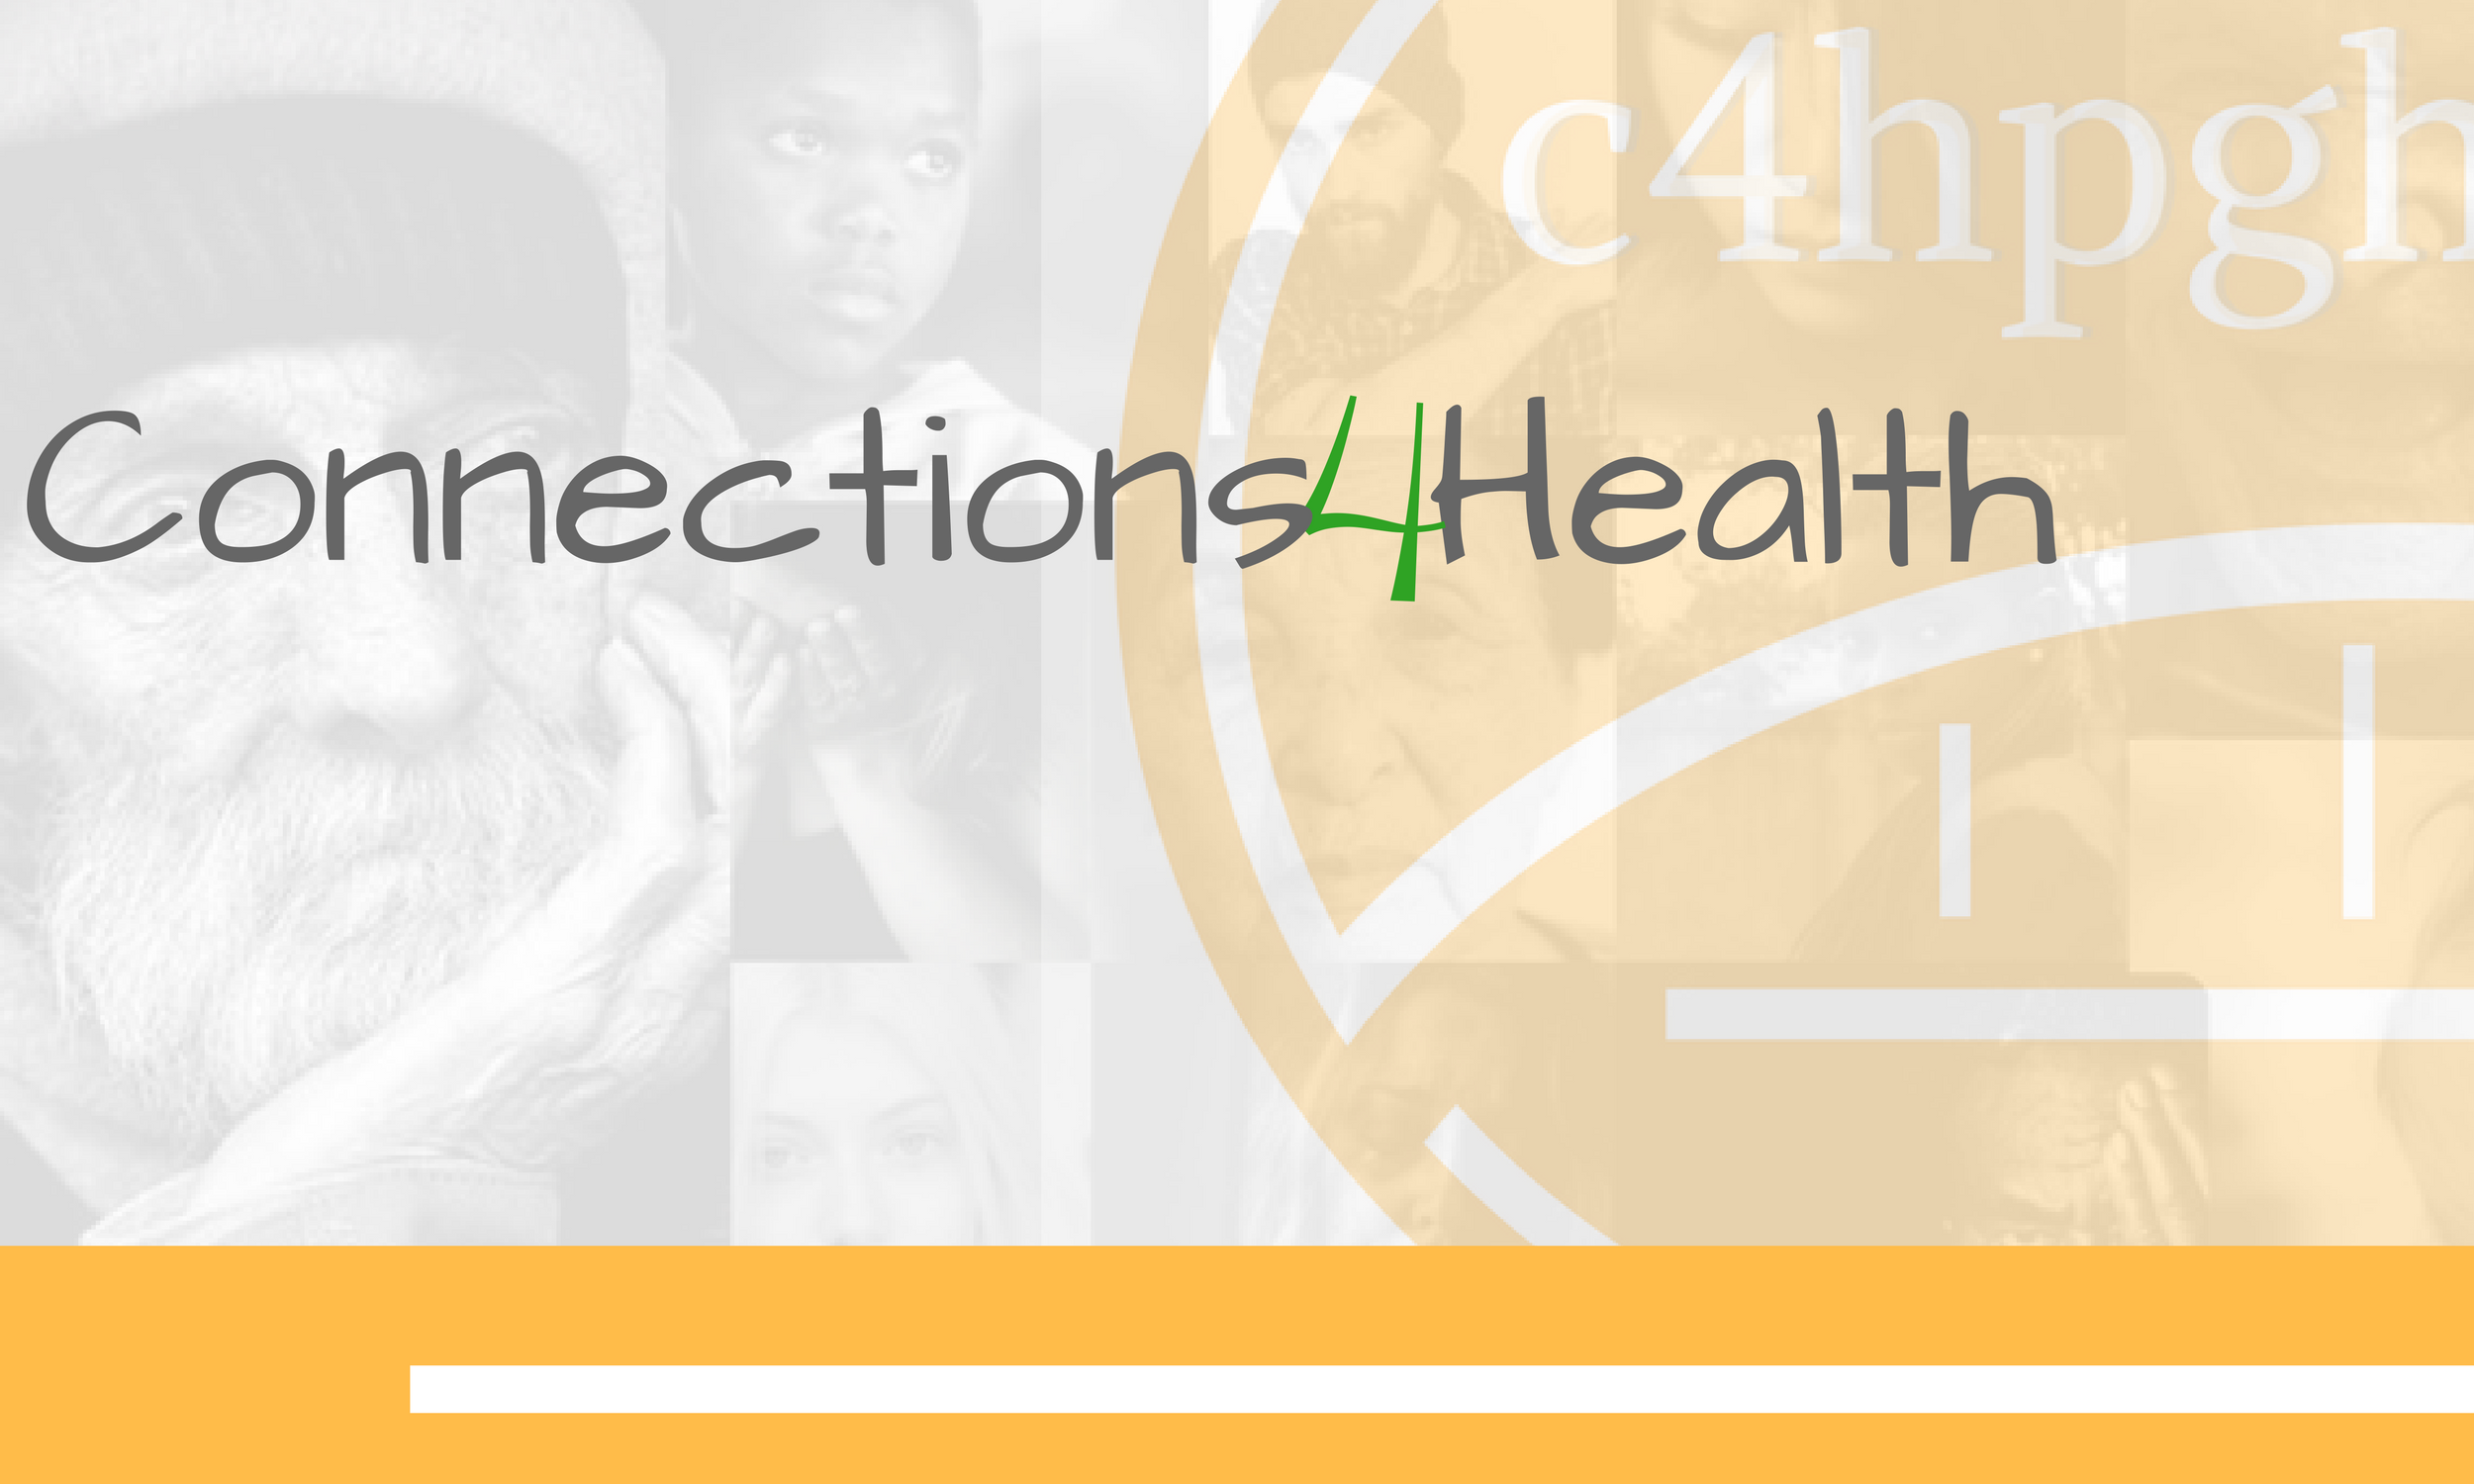 Copy of Copy of Connections4Health (1).png